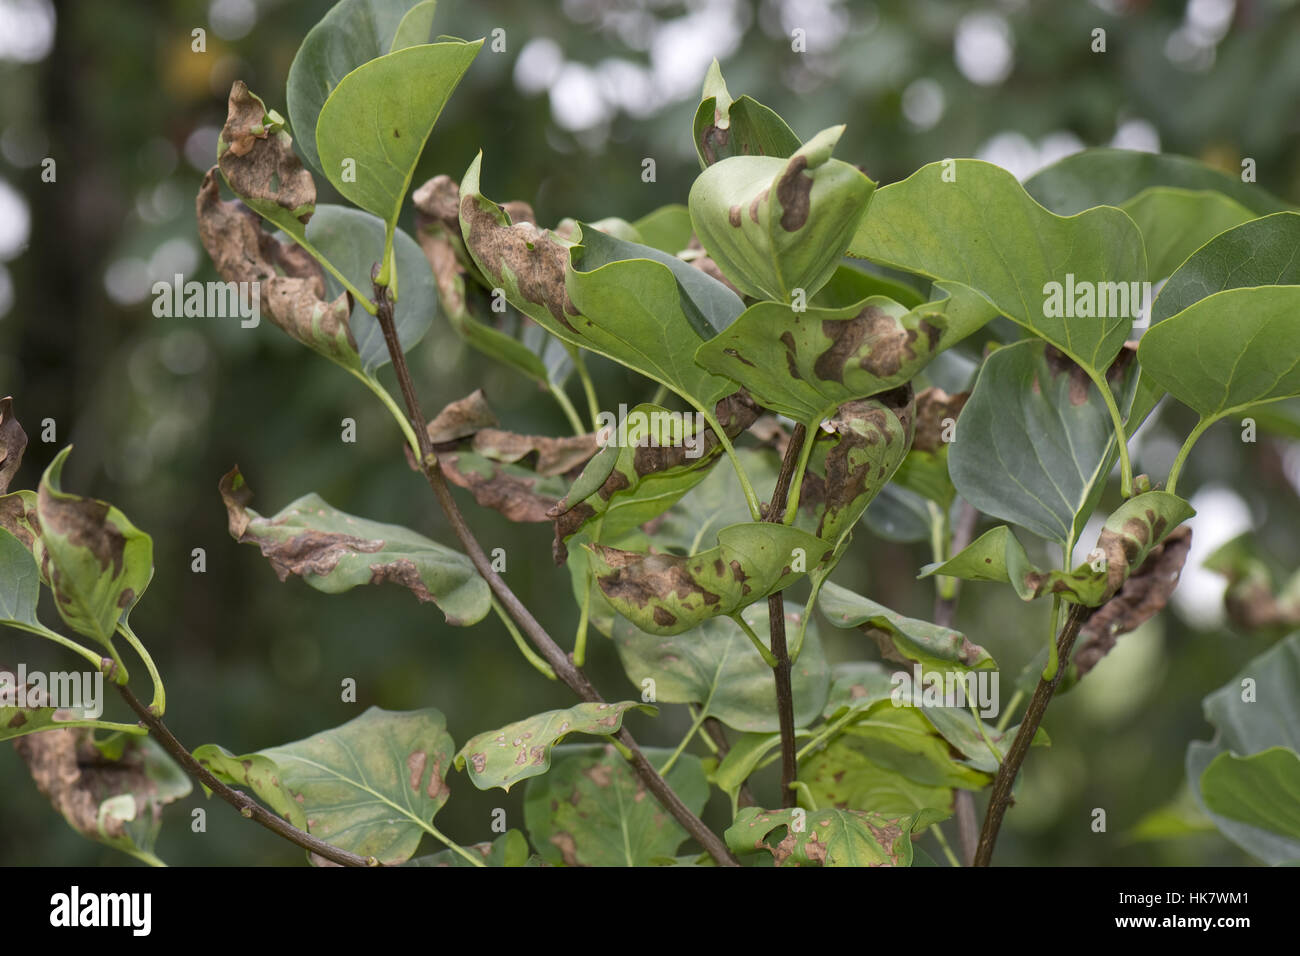 Symptoms of magnesium deficiency on late summer foliage of a lilac tree, Berkshire, June - Stock Image